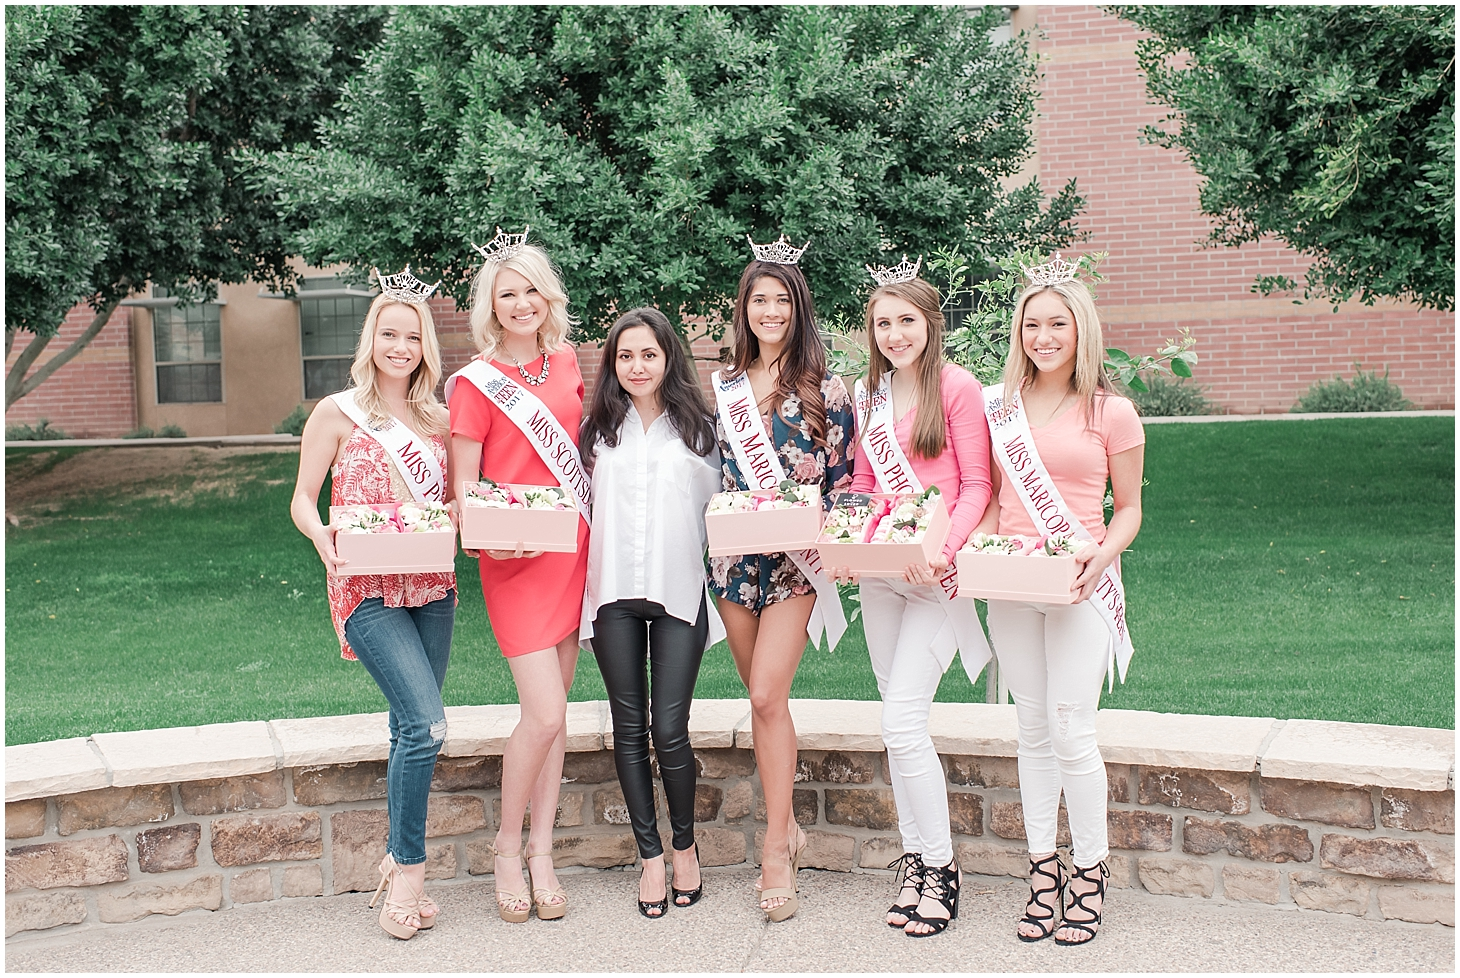 Beautiful boxes filled with an arrangement of lovely flowers and delicious French macarons made with love by Flower from Lower. Pictured are Miss Maricopa County 2017 Courtney Ortega, Miss Phoenix 2017 Alyssa Scofield, Miss Maricopa's Outstanding Teen Ela Wootton, Miss Scottsdale's Outstanding Teen Alyssa Hart, Miss Phoenix's Outstanding Teen Cassidy Miller, and founder of Flower from Lover Nadeera. Photo taken by Jade Min Photography.